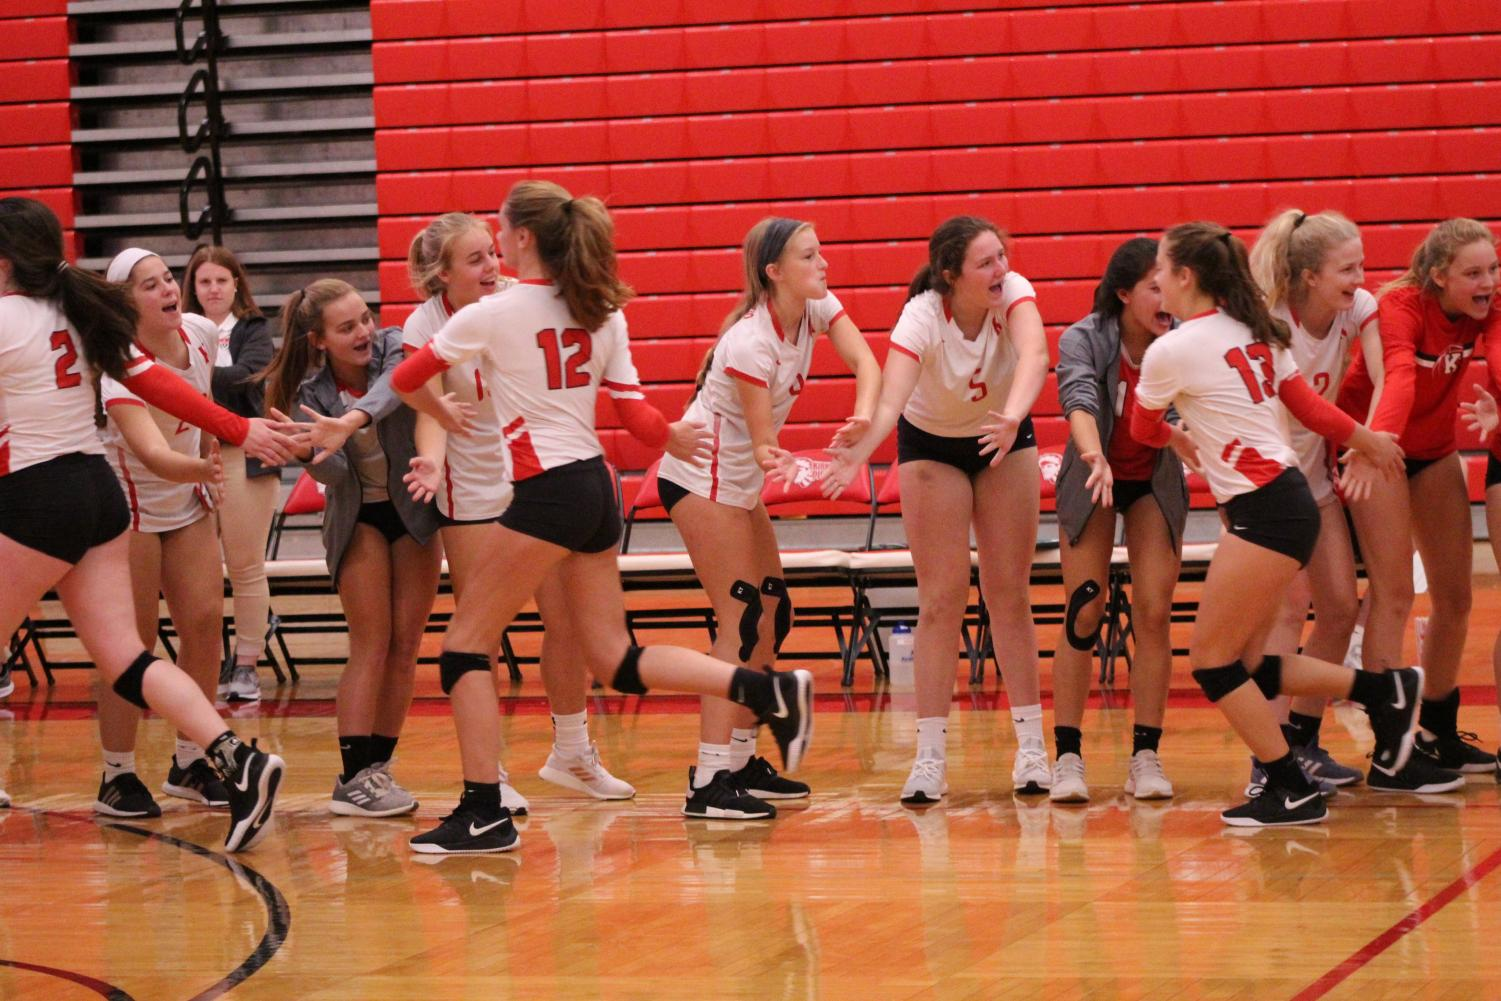 Girls+volleyball%2C+varsity%2C+gets+congratulated+by+the+JV+team+after+winning+the+game+against+Ursuline.